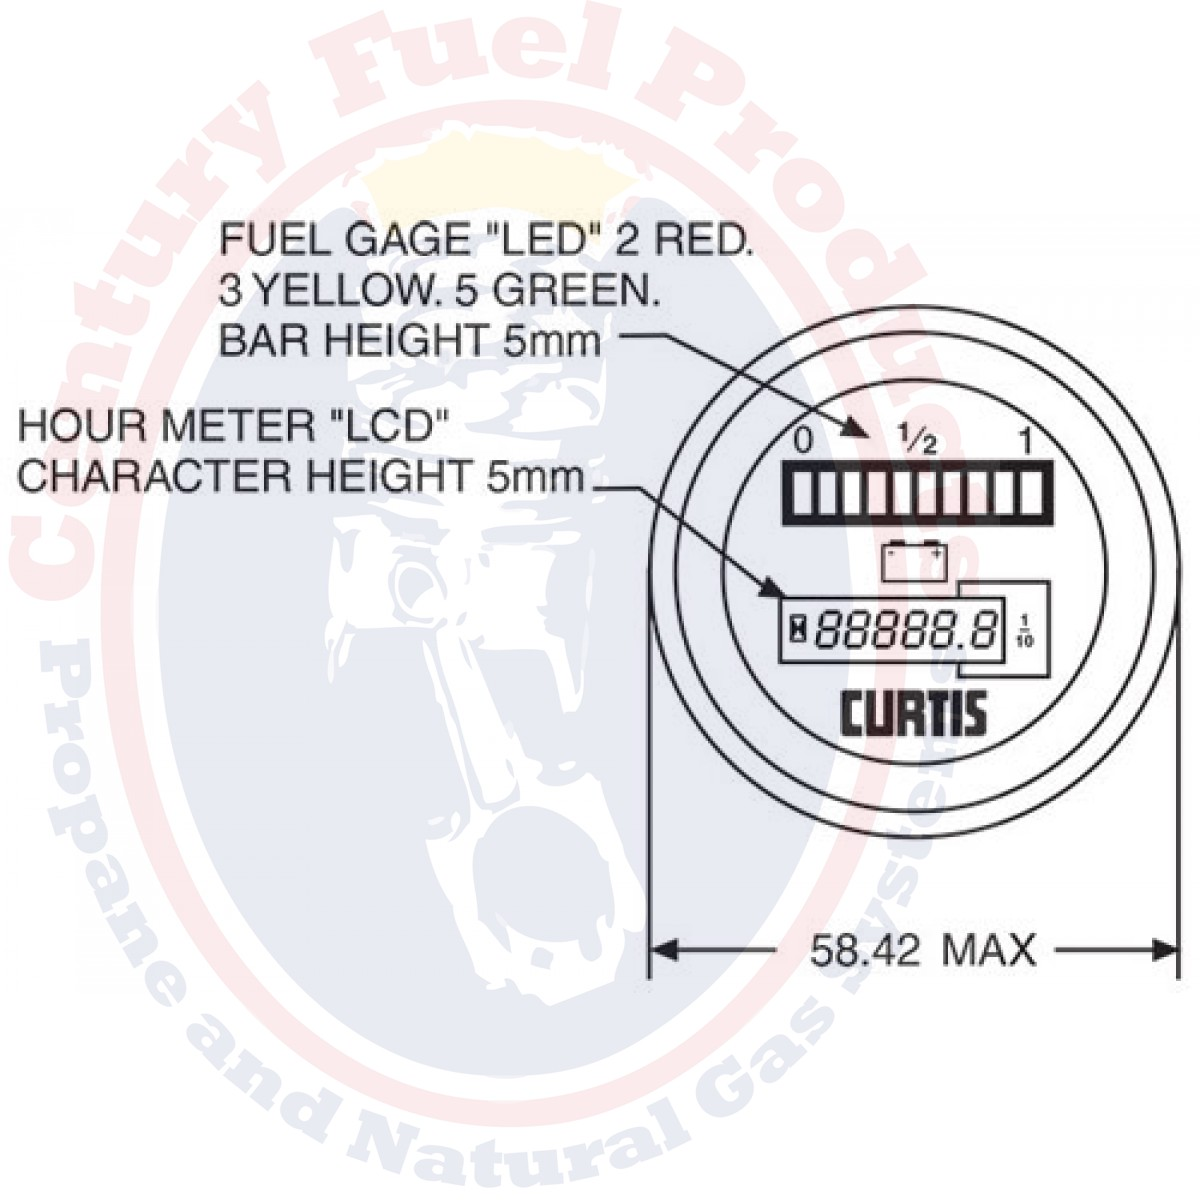 870 256 Raymond Forklift Bdi Hour Meter 870256 802rb2436bn Gauge Battery Indicator Wiring Diagram